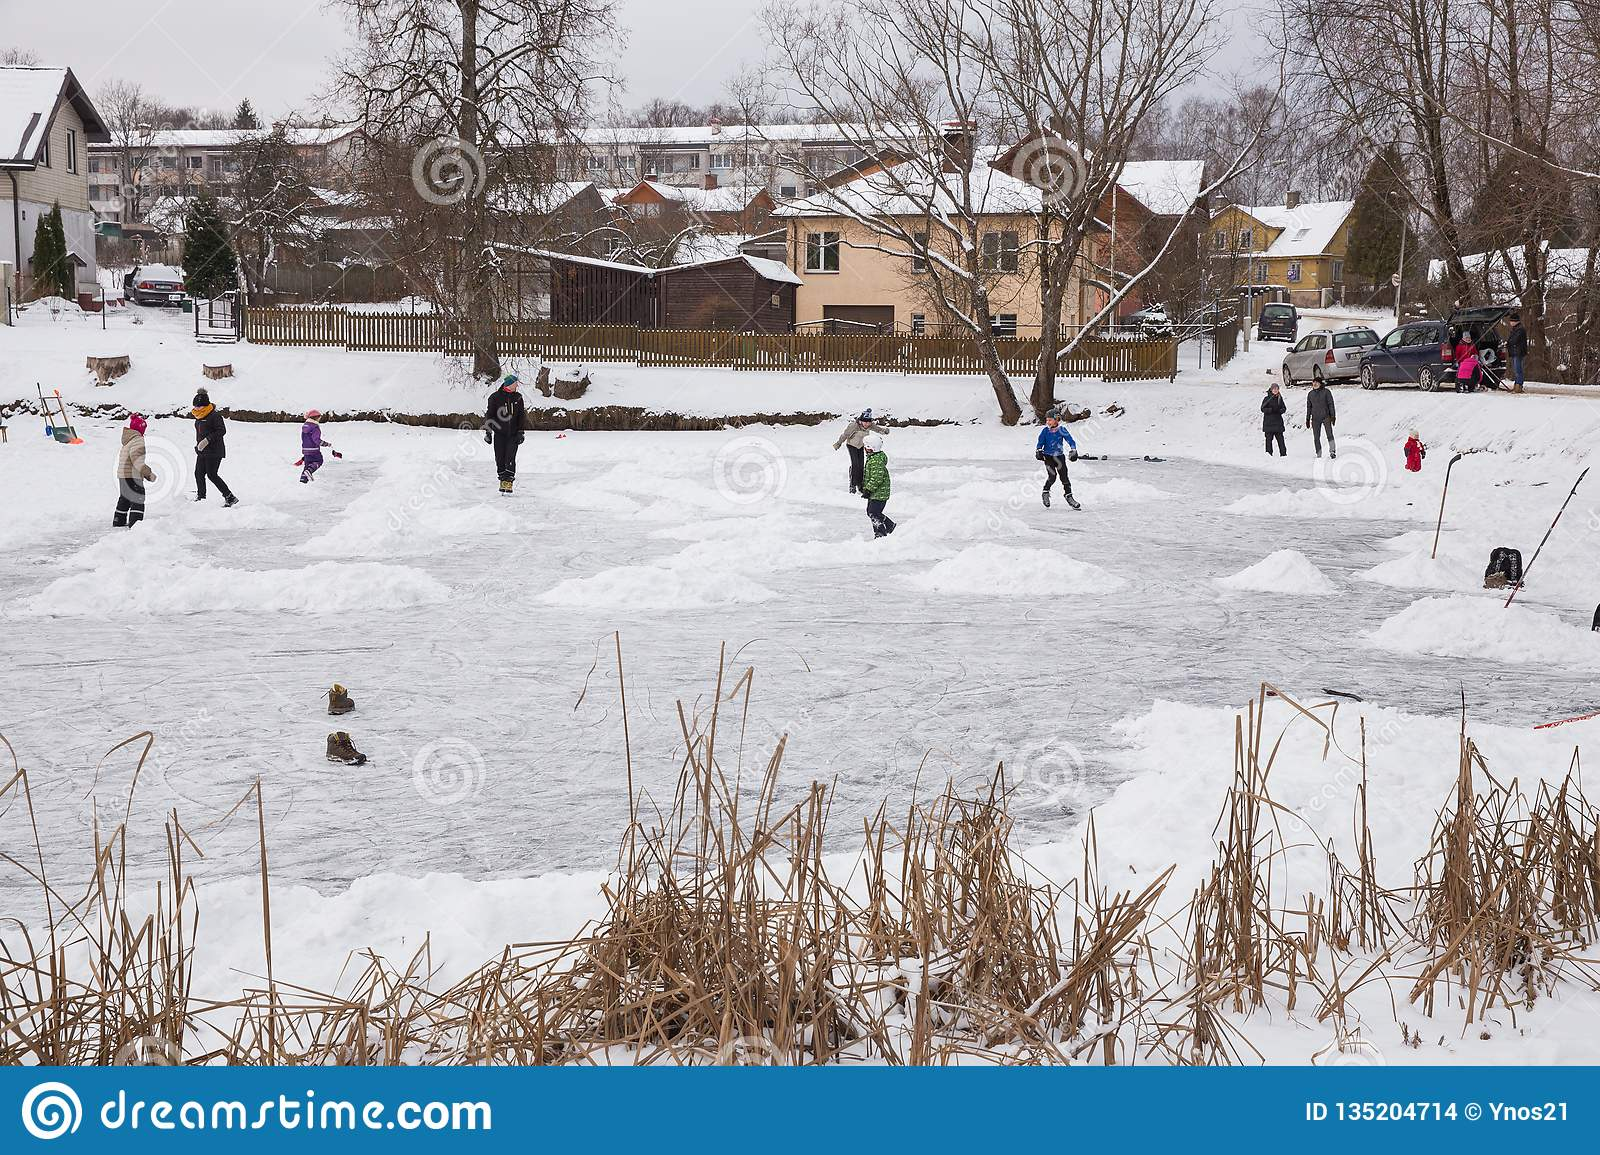 Outdoor ice hokey, players and frozen pond. Travel photo 2018